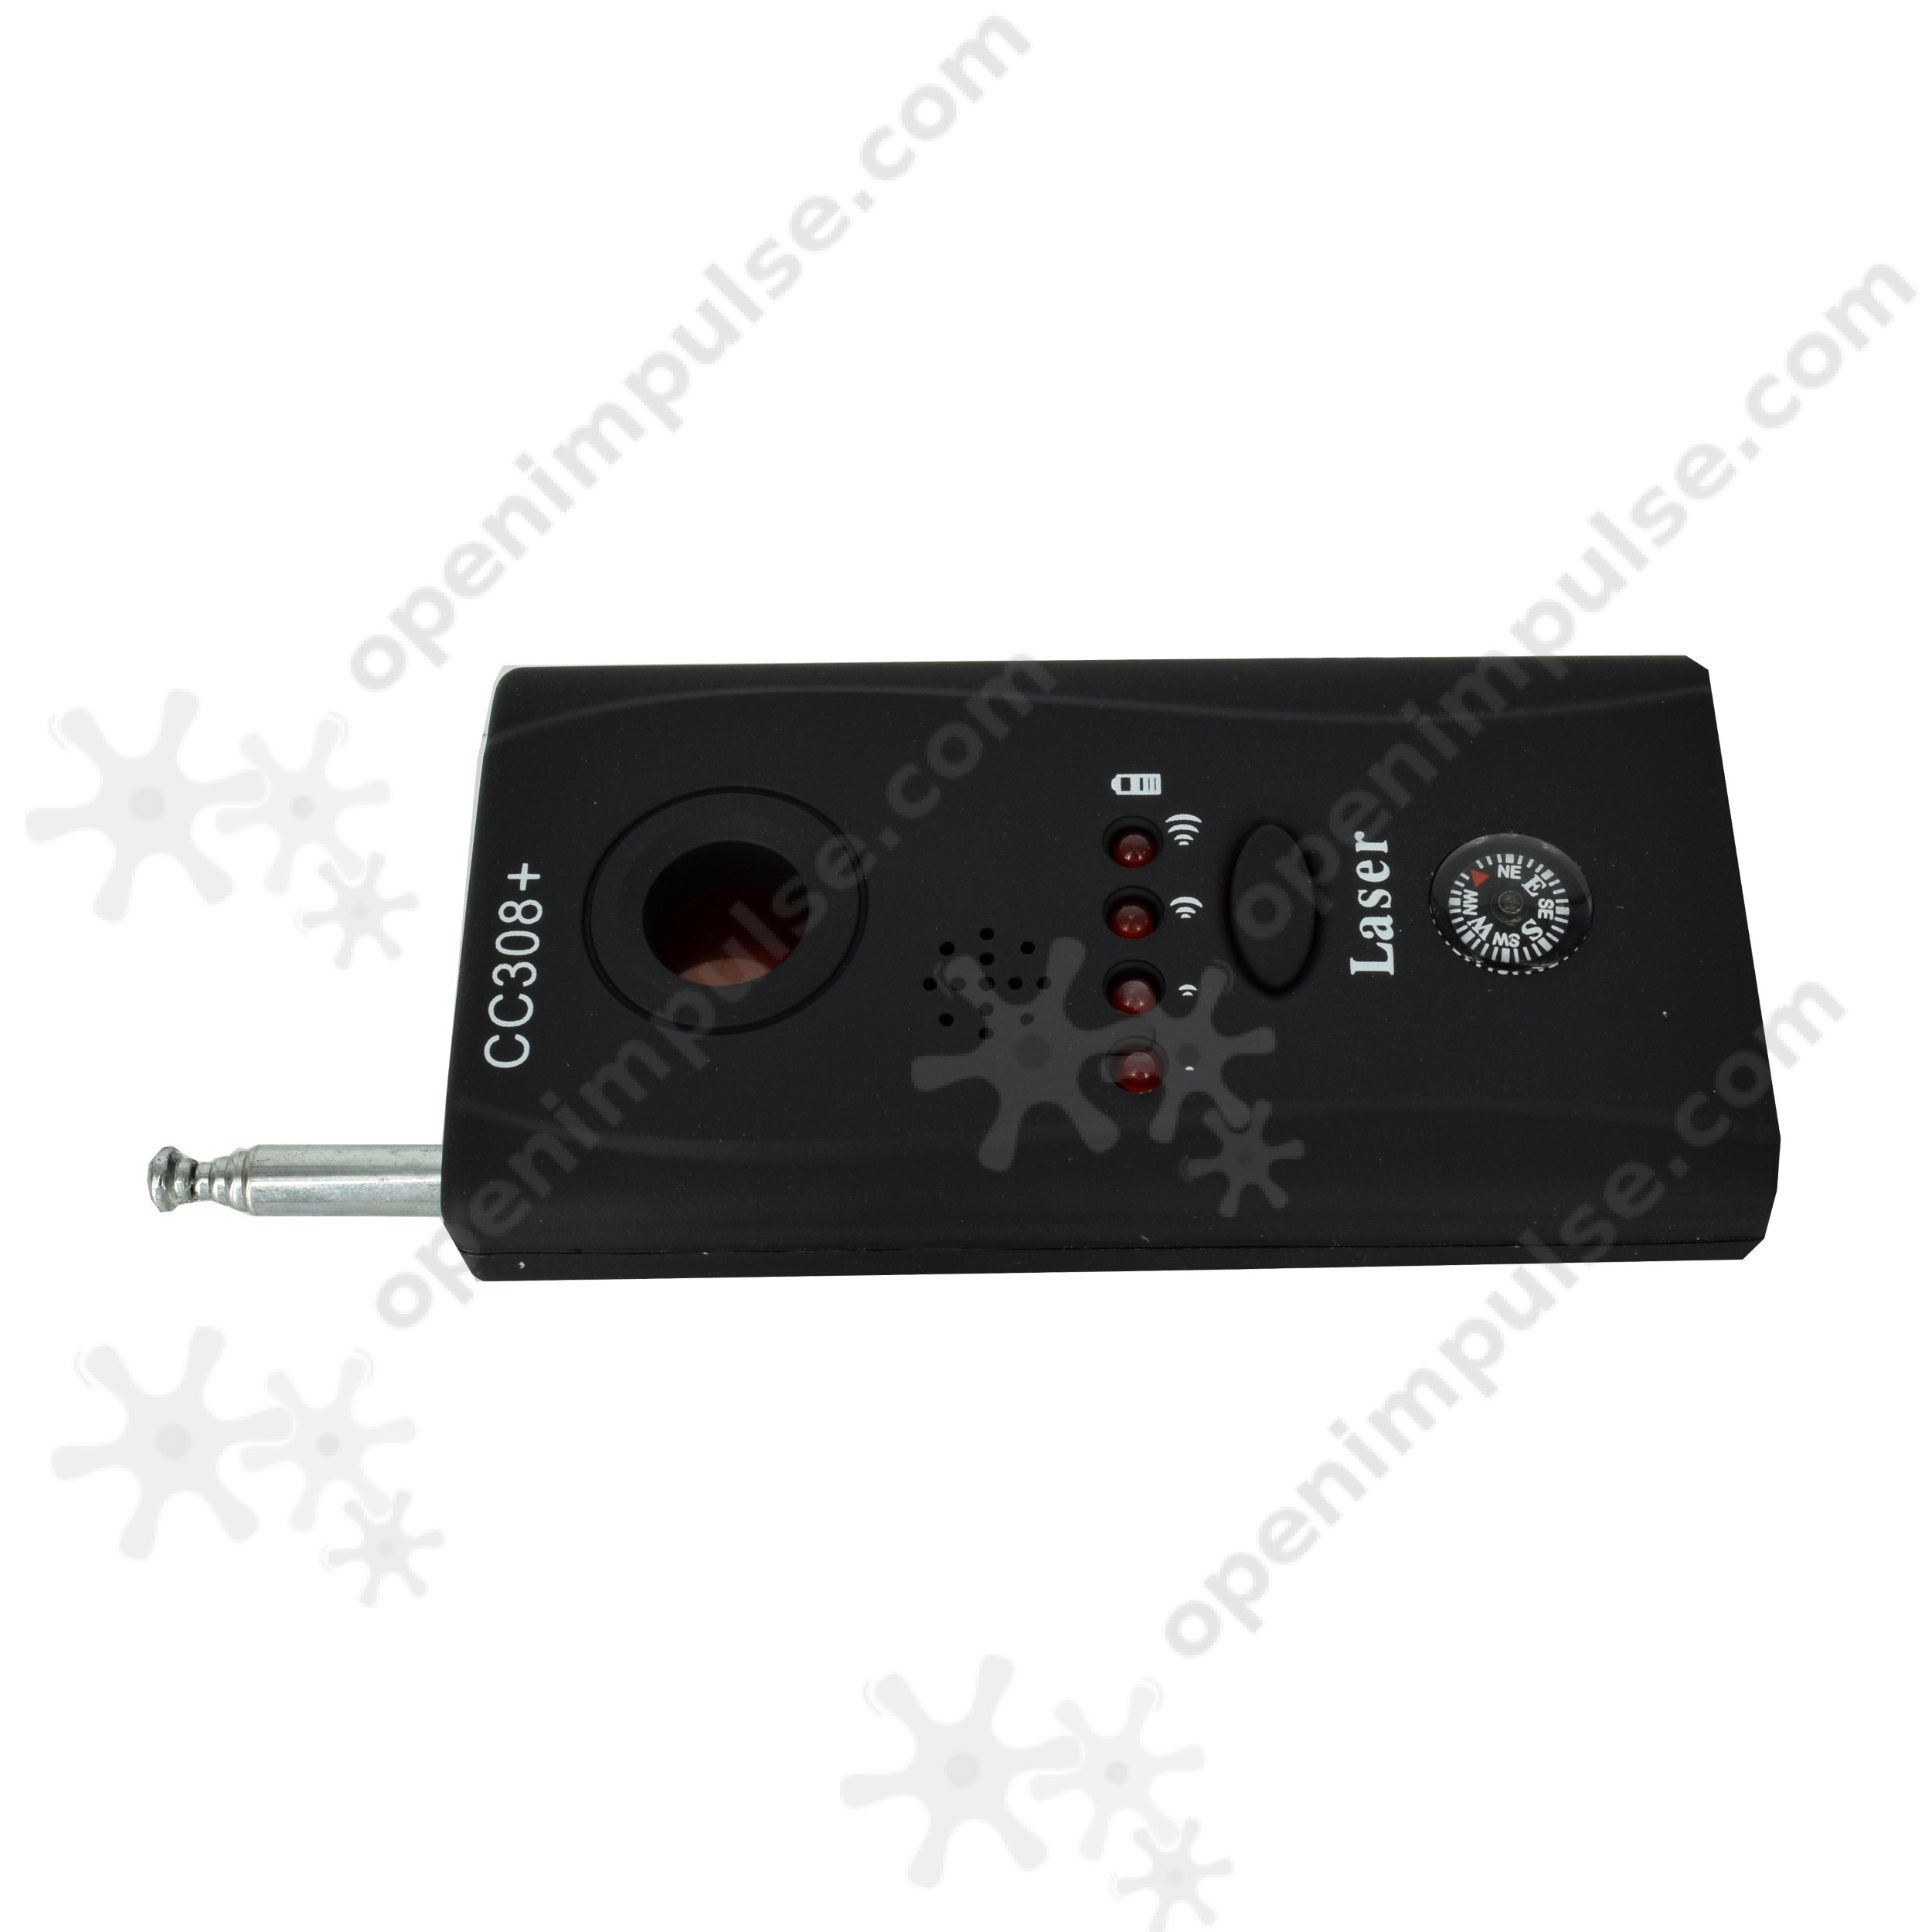 Cc308 Hidden Camera And Microphone Detector Open Impulseopen Impulse